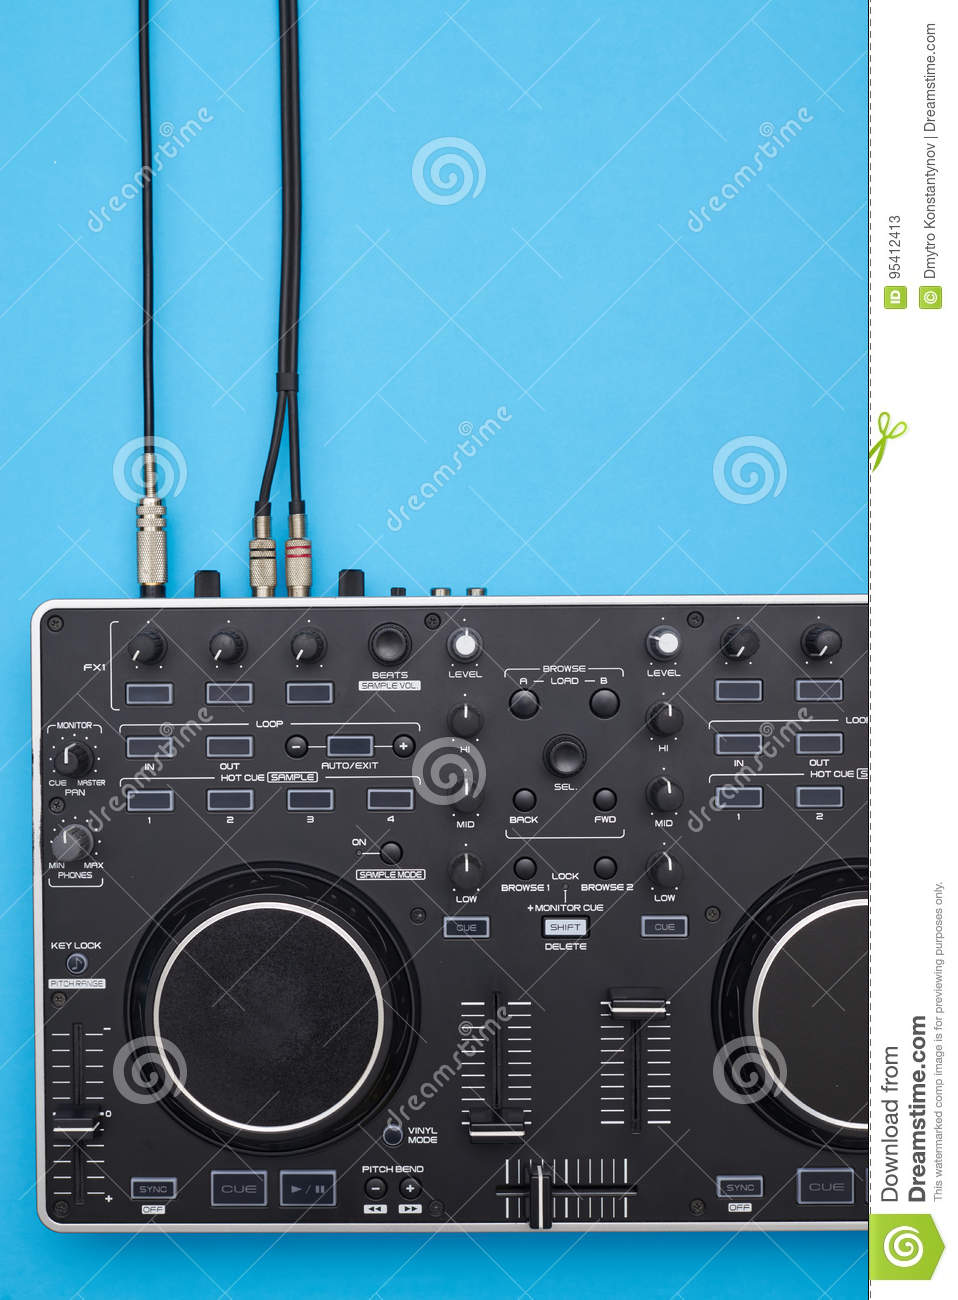 Connected DJ panel on blue background